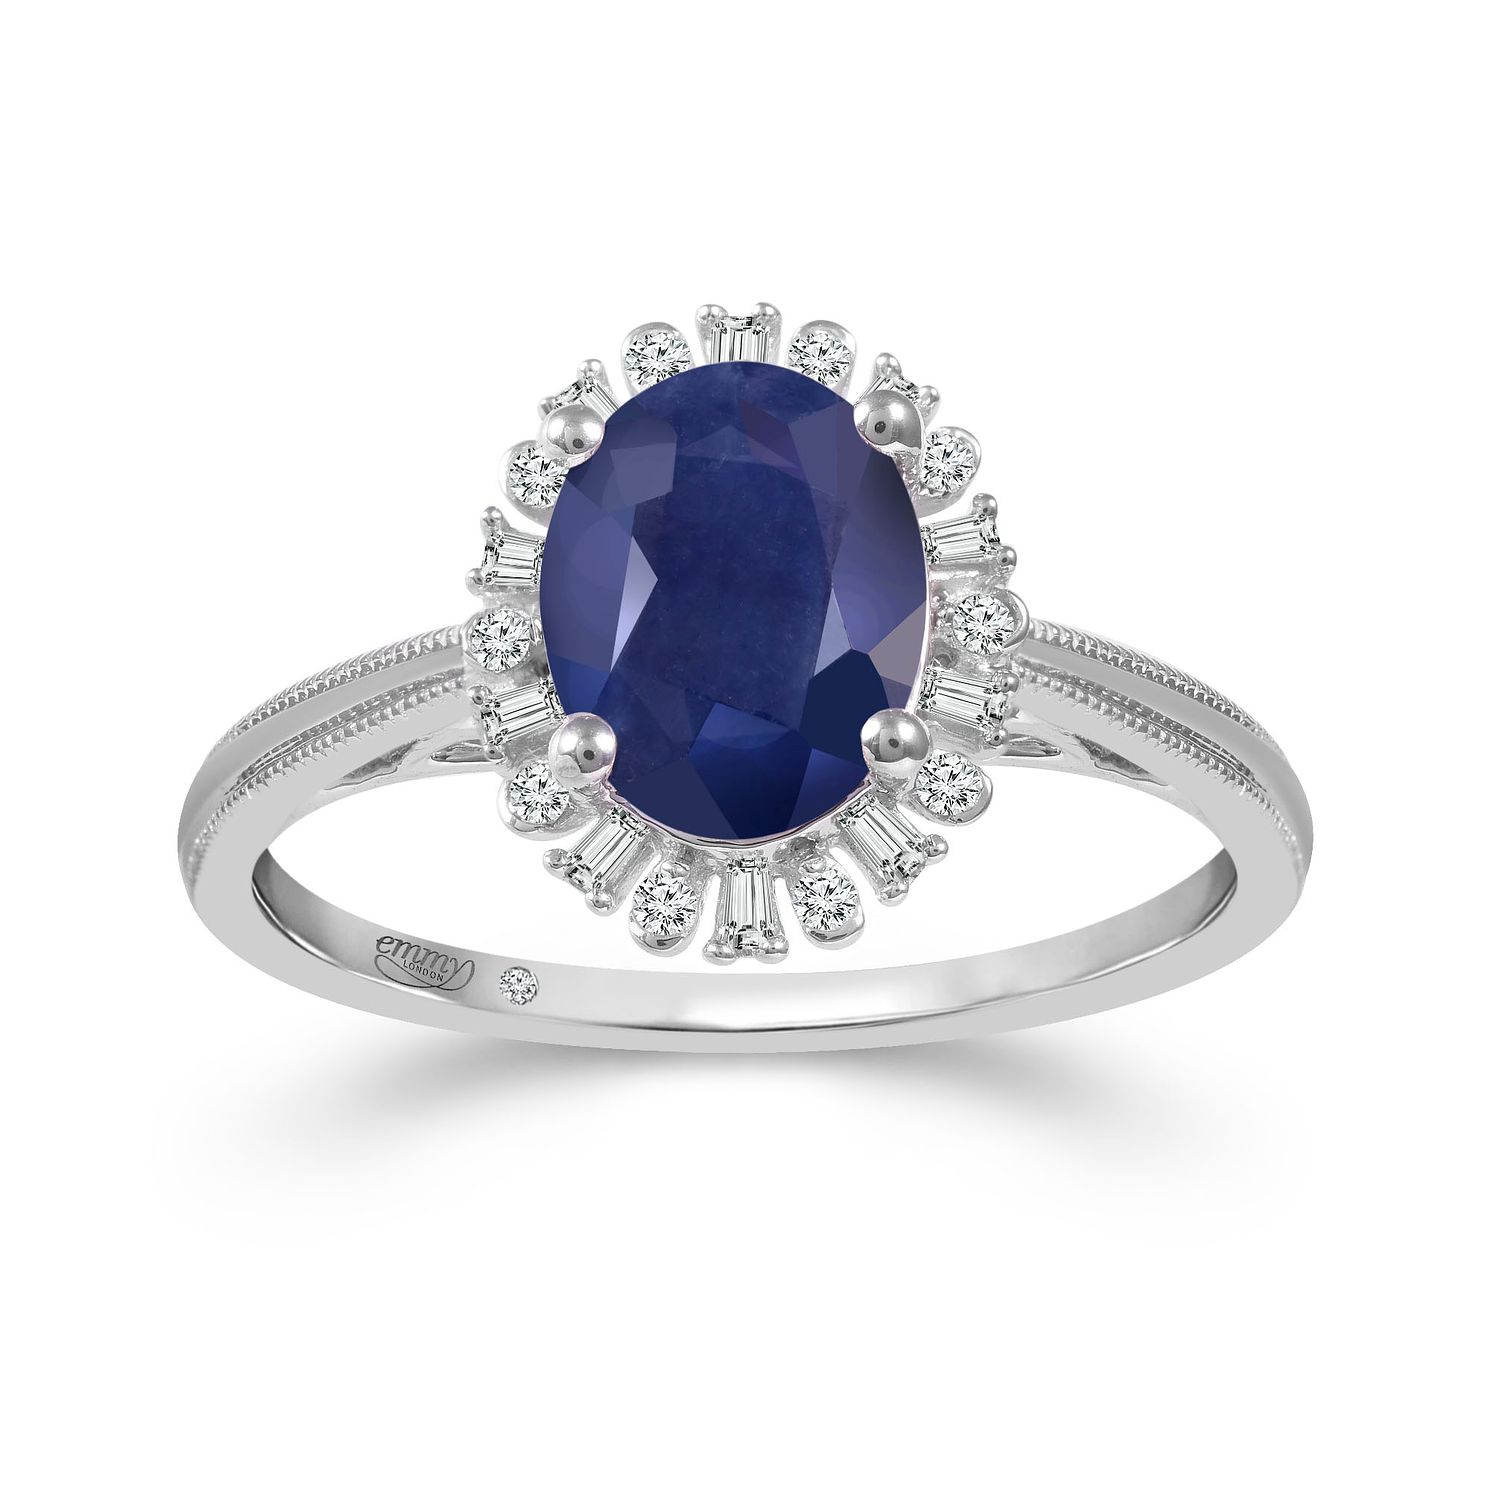 Emmy London 18ct White Gold Sapphire & 0.12ct Diamond Ring - Product number 6104541